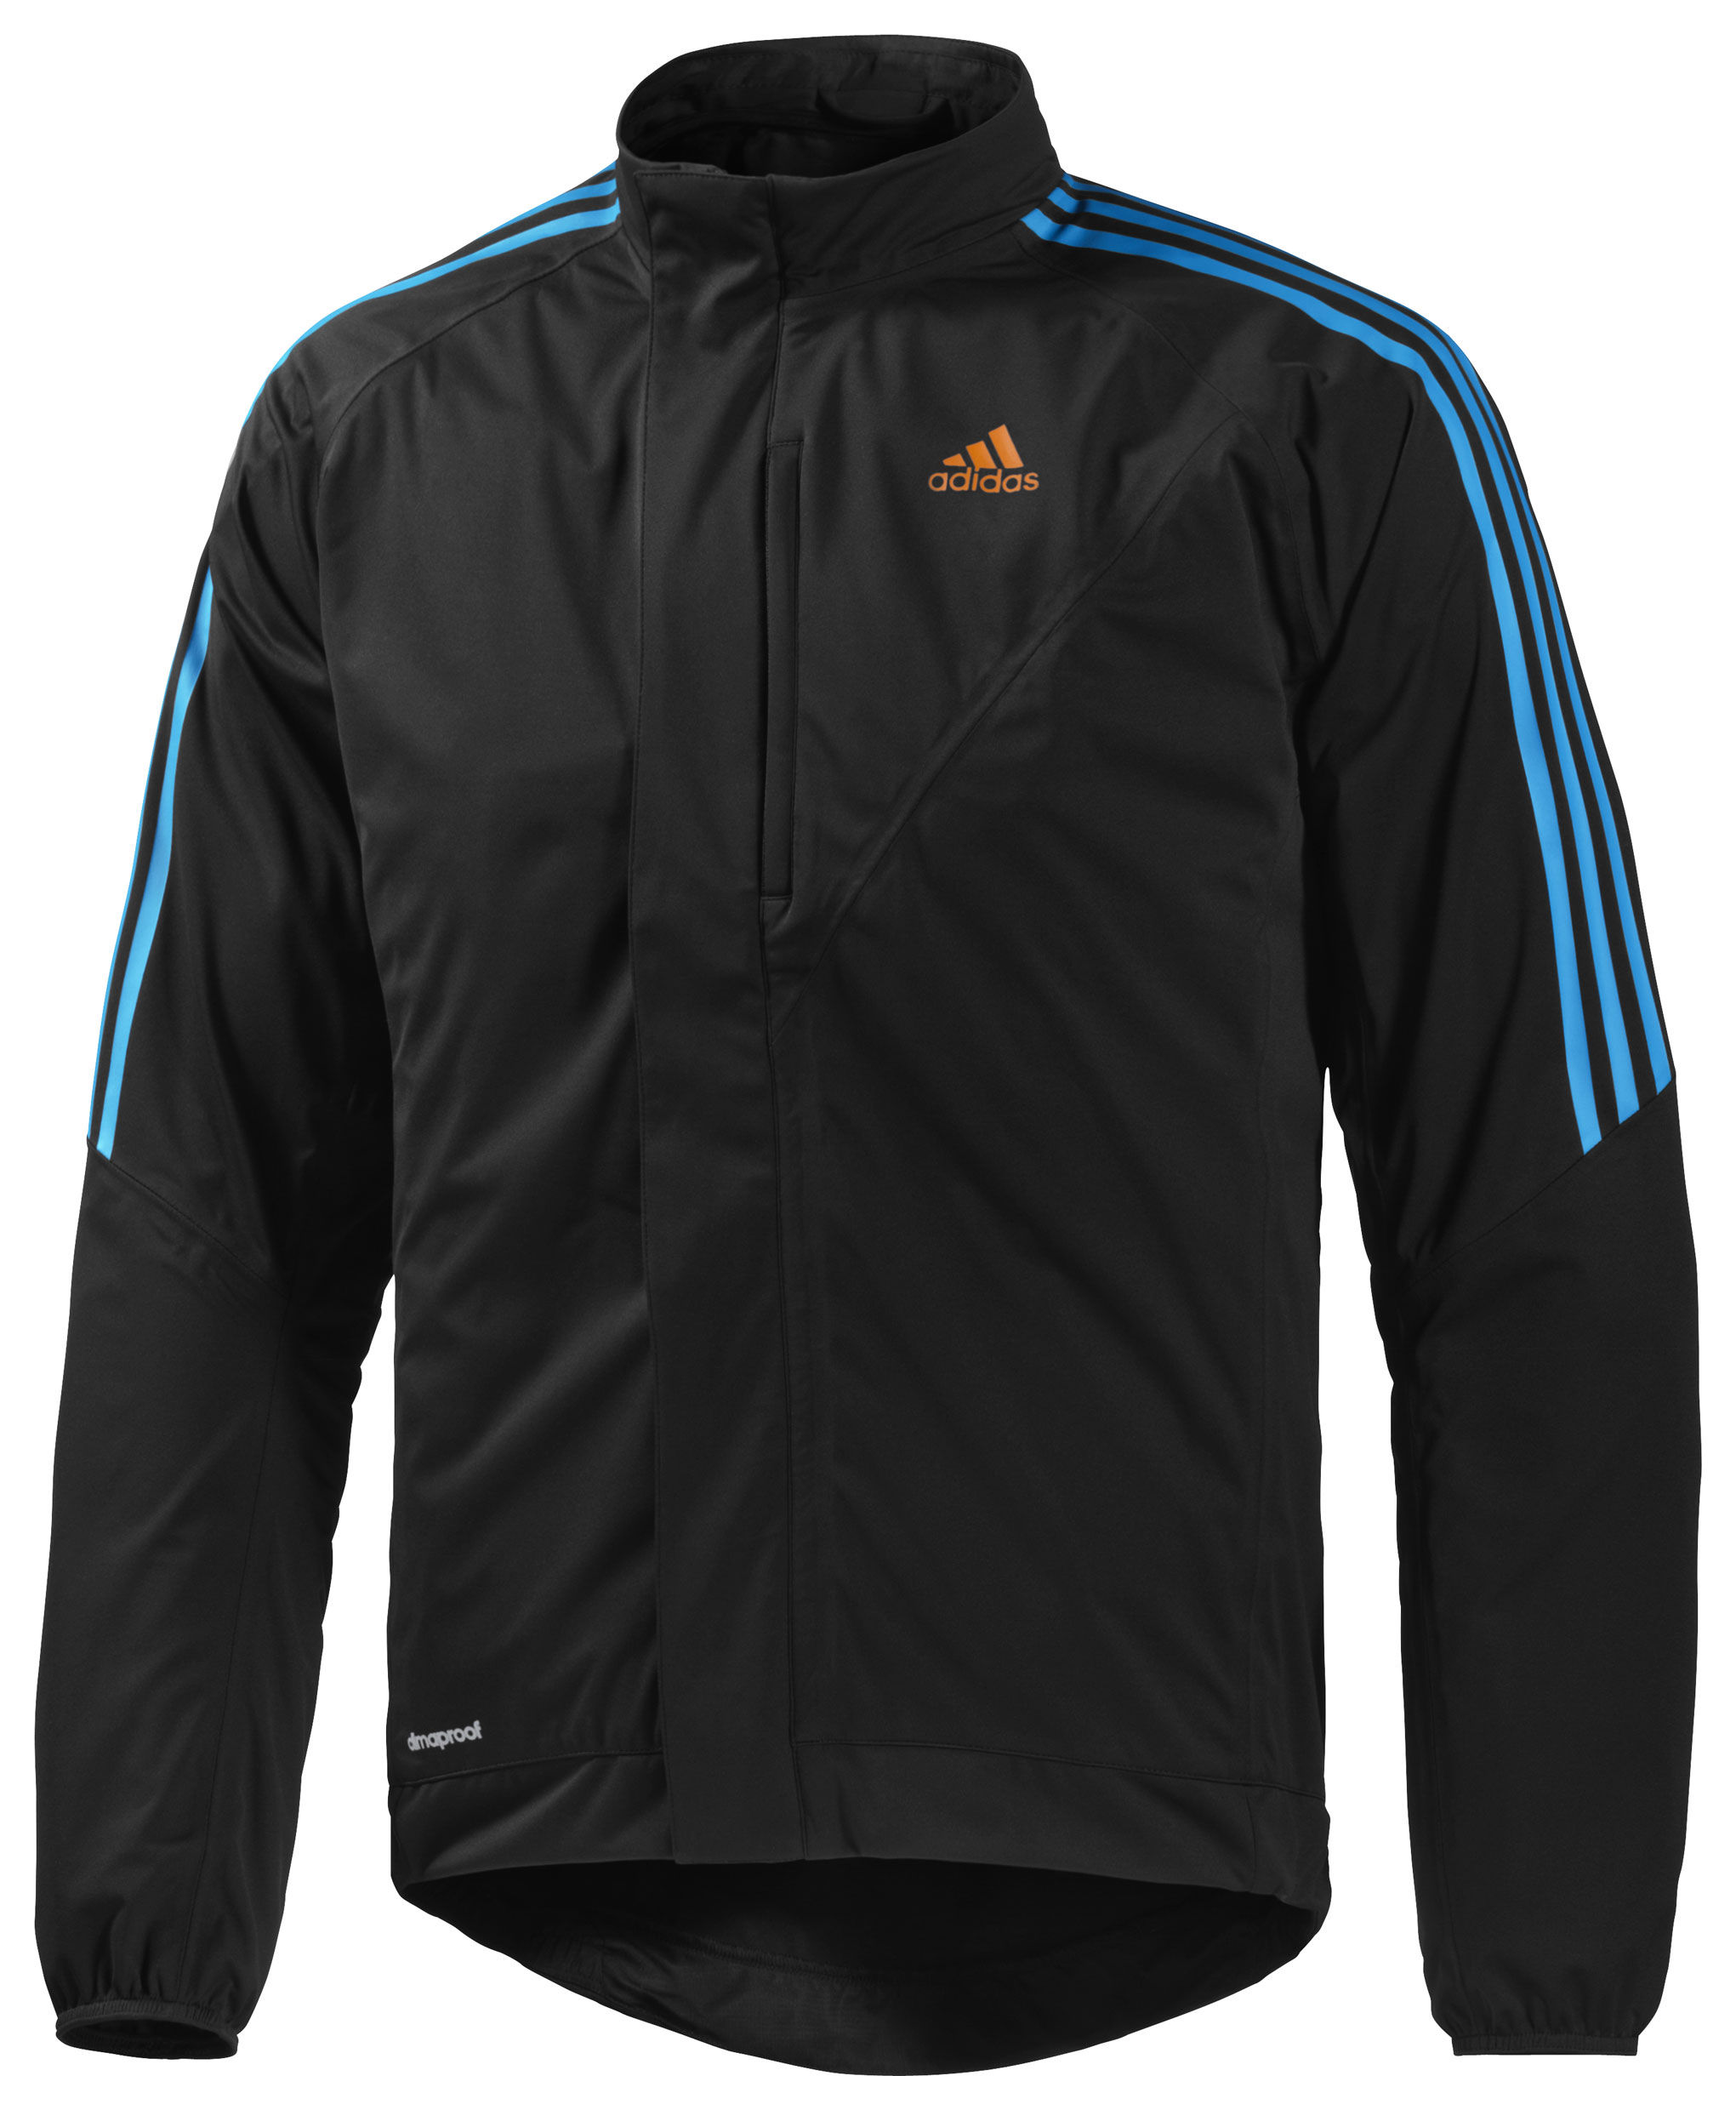 Adidas Tour Rain Jacket   Cycling Waterproof Jackets